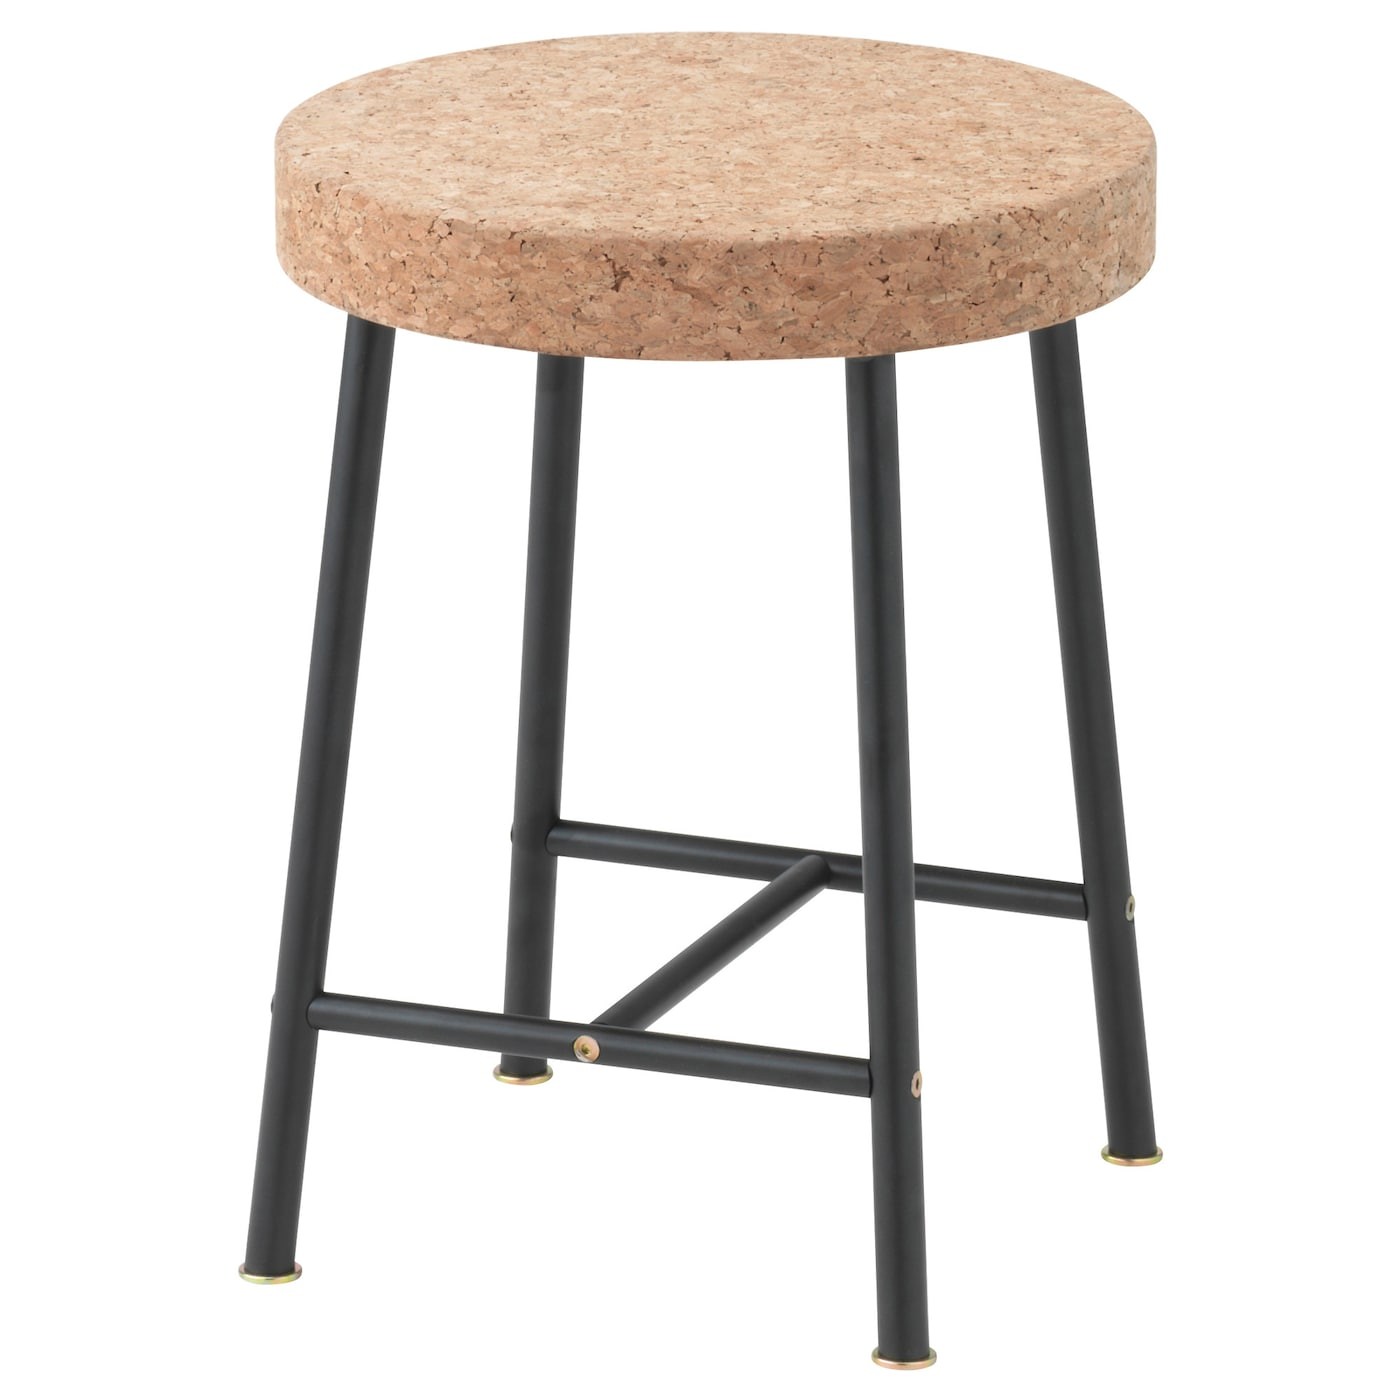 IKEA SINNERLIG stool Cork is a natural material giving variations in colour and appearance.